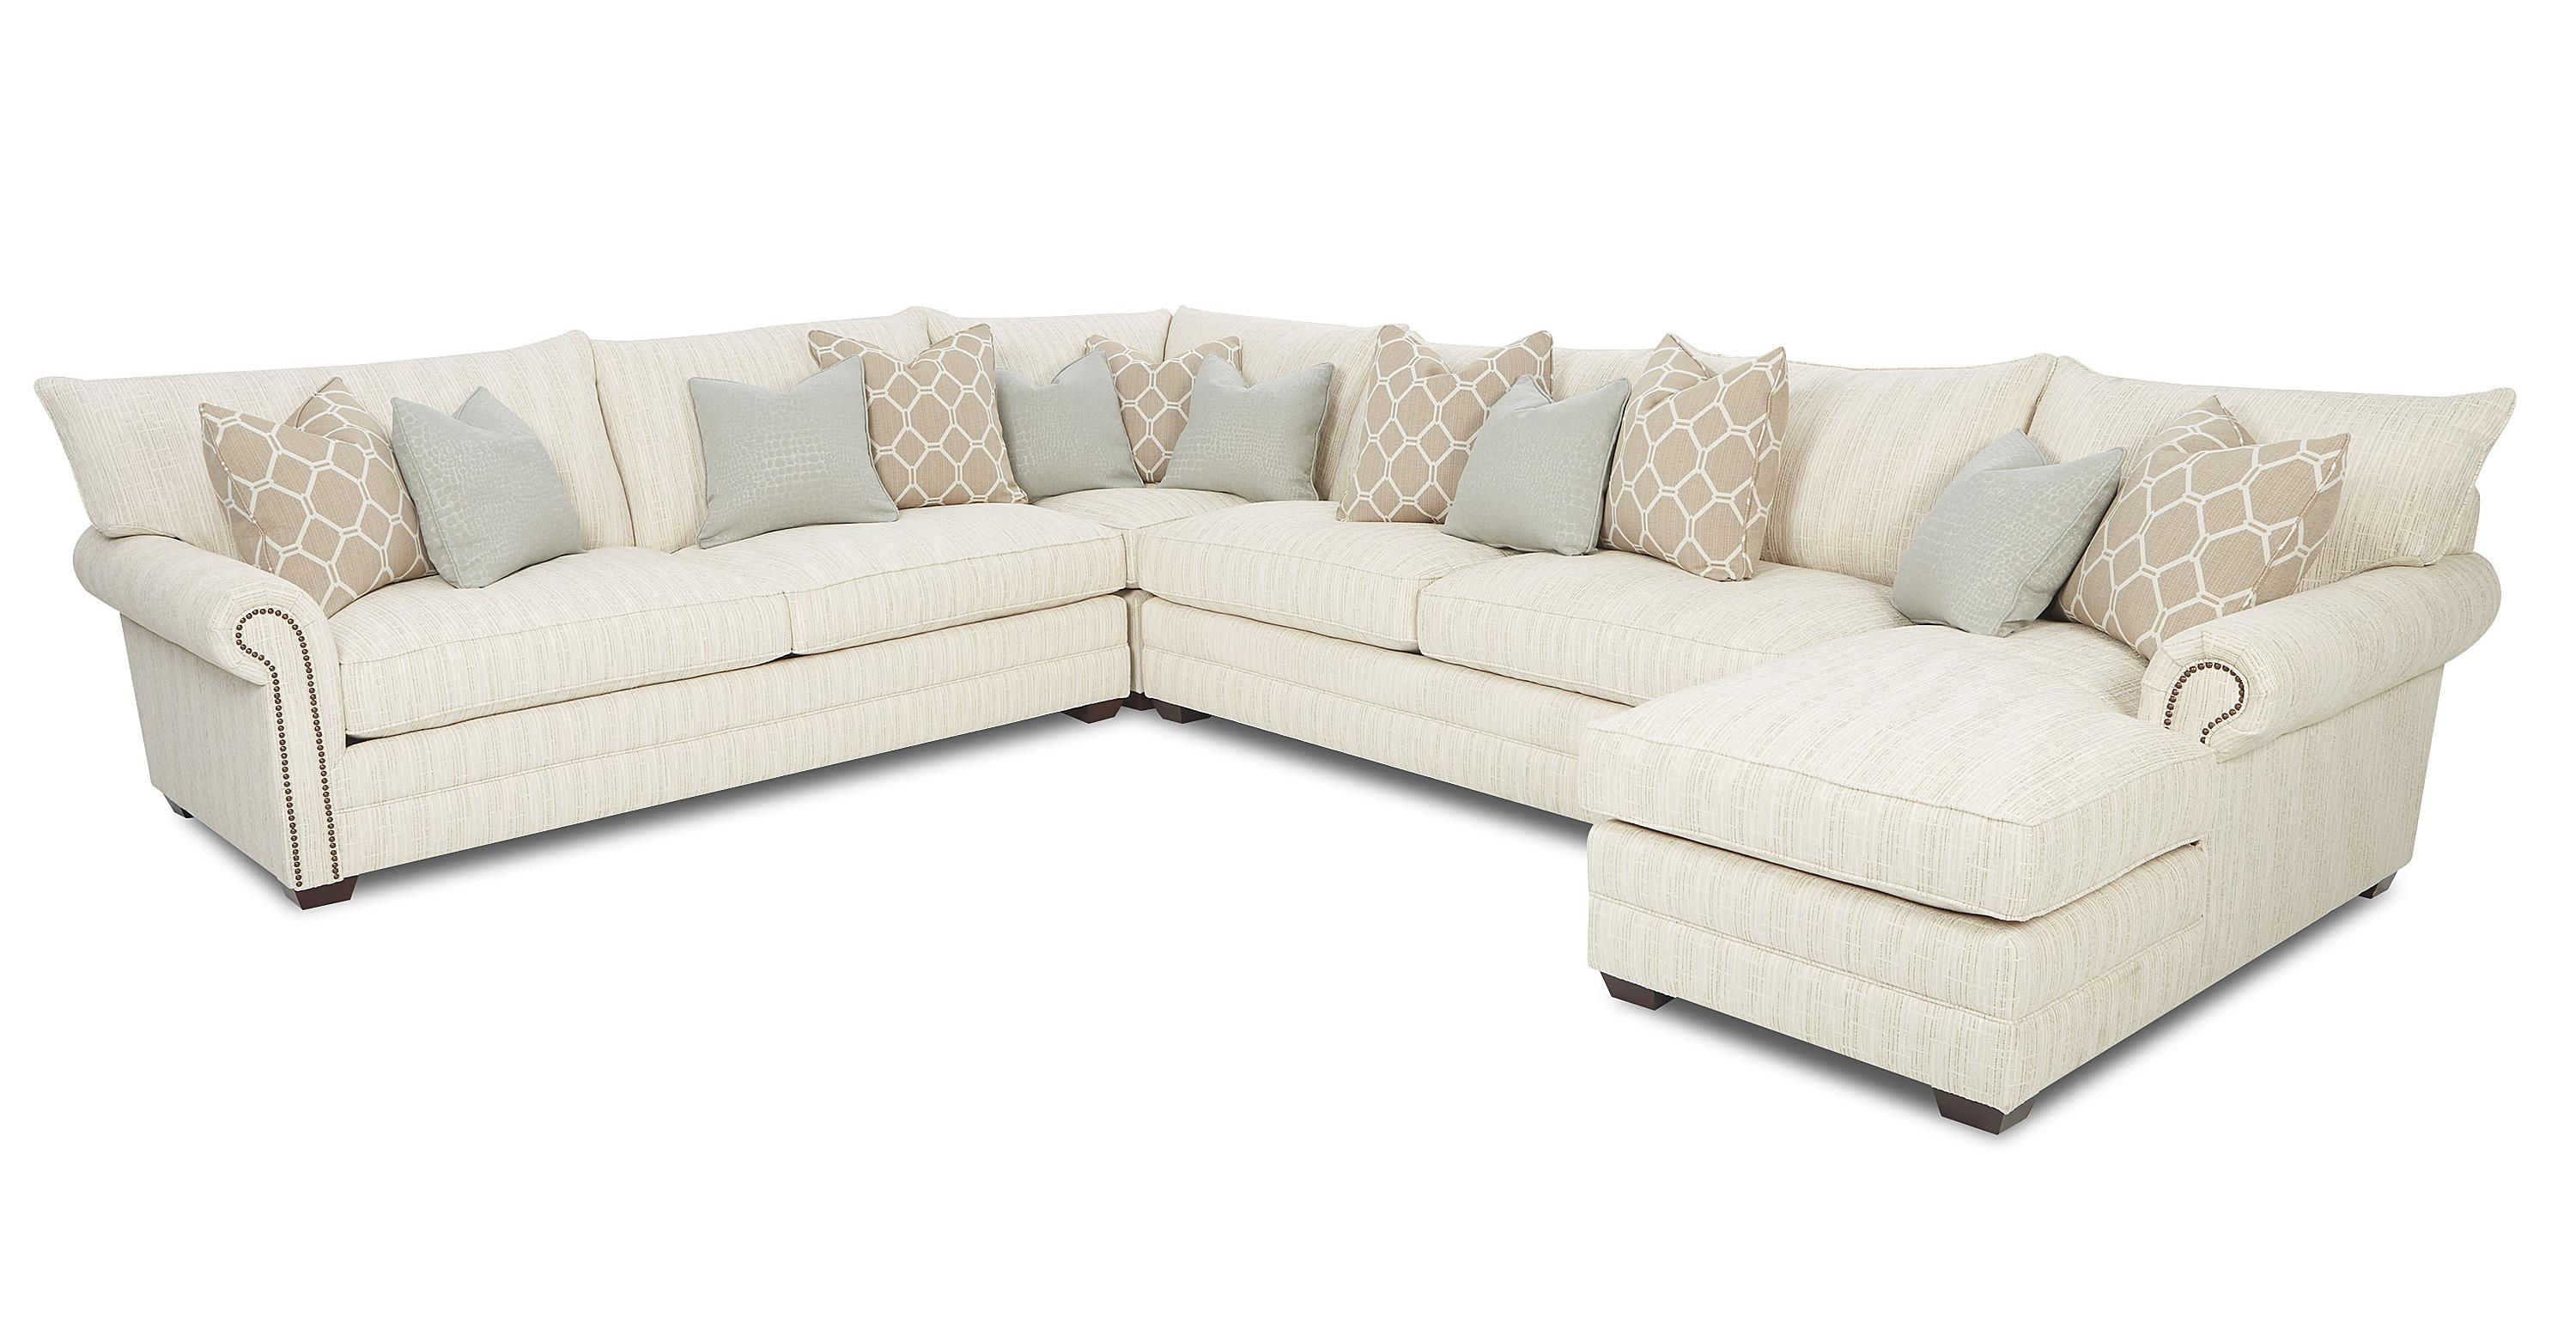 Klaussner Huntley Traditional Sectional Sofa With Nailhead